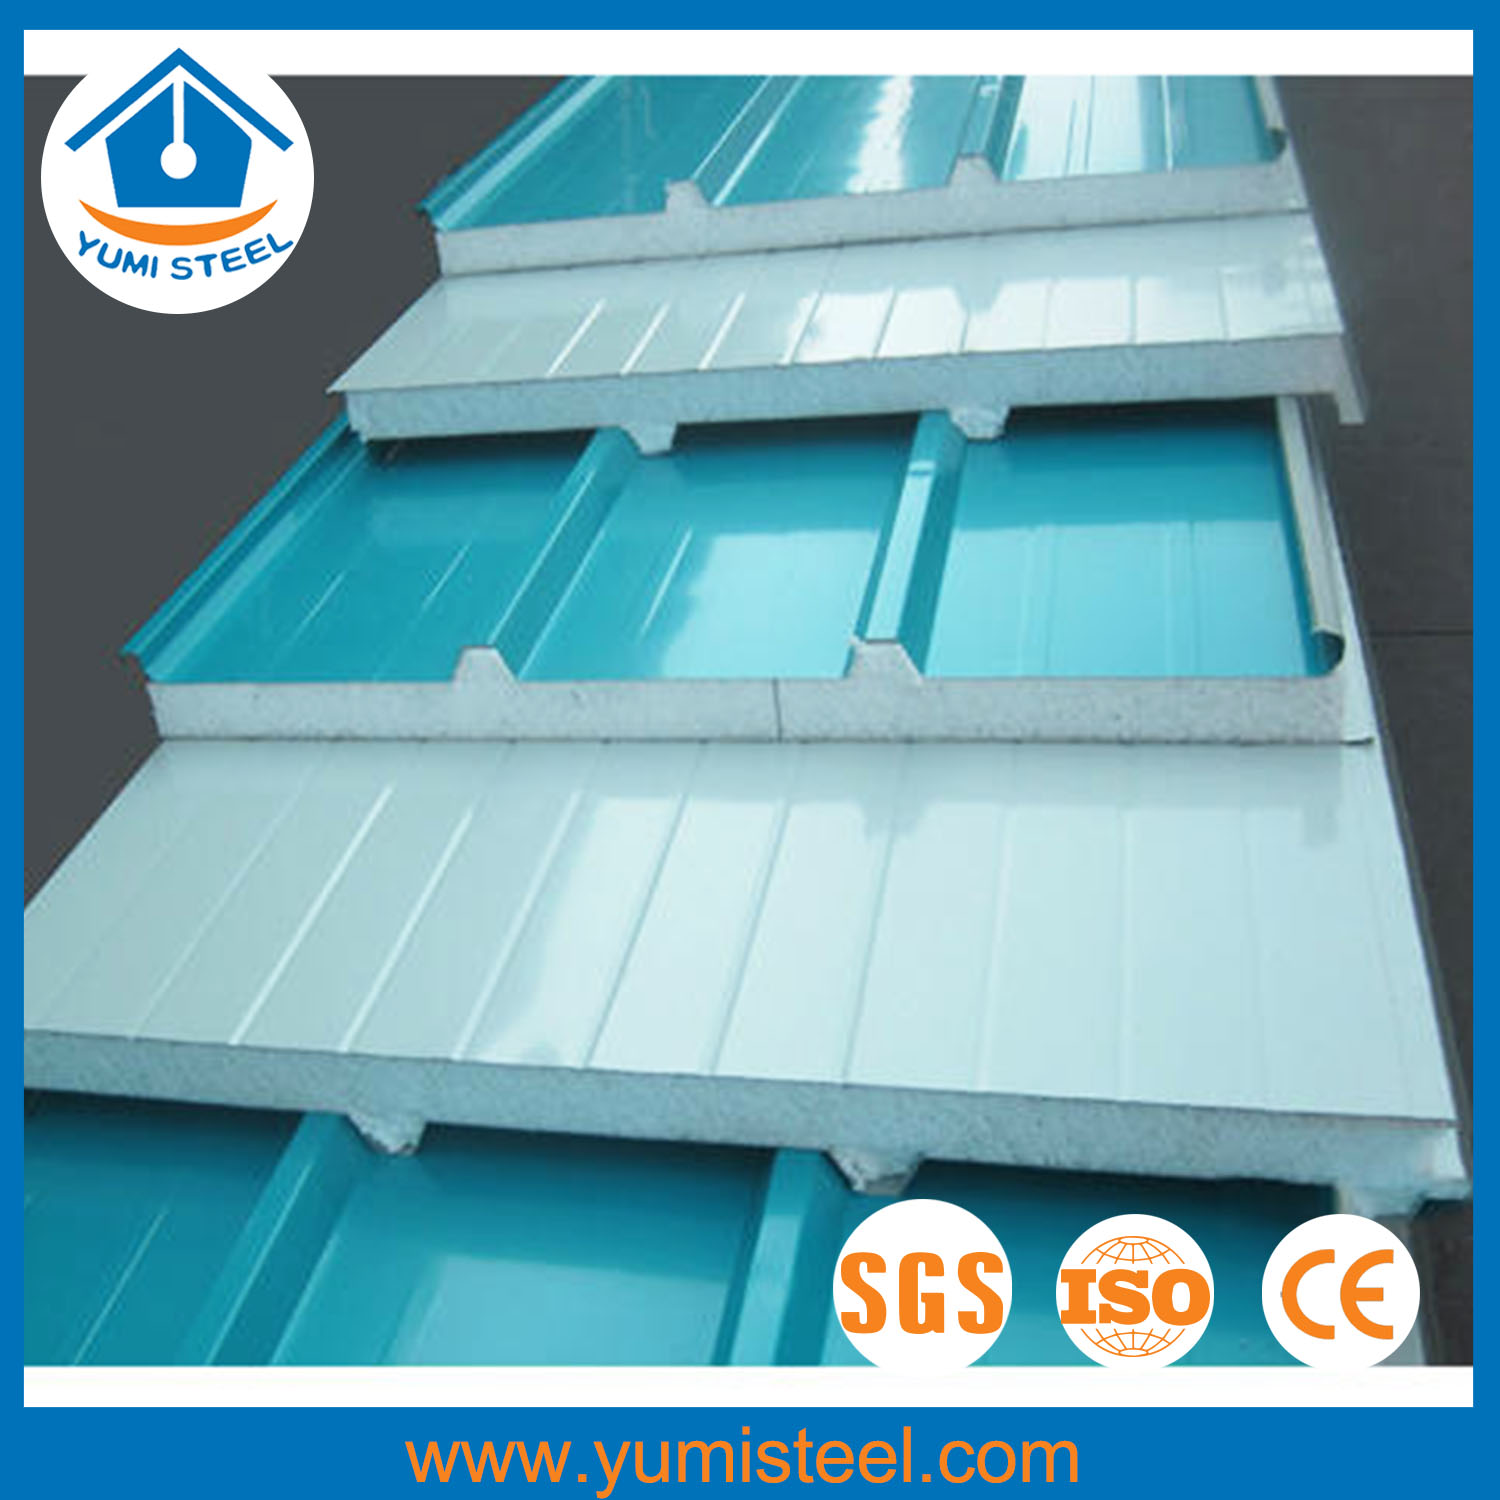 Insulated Colored Pu Sandwich Panels Fireproof